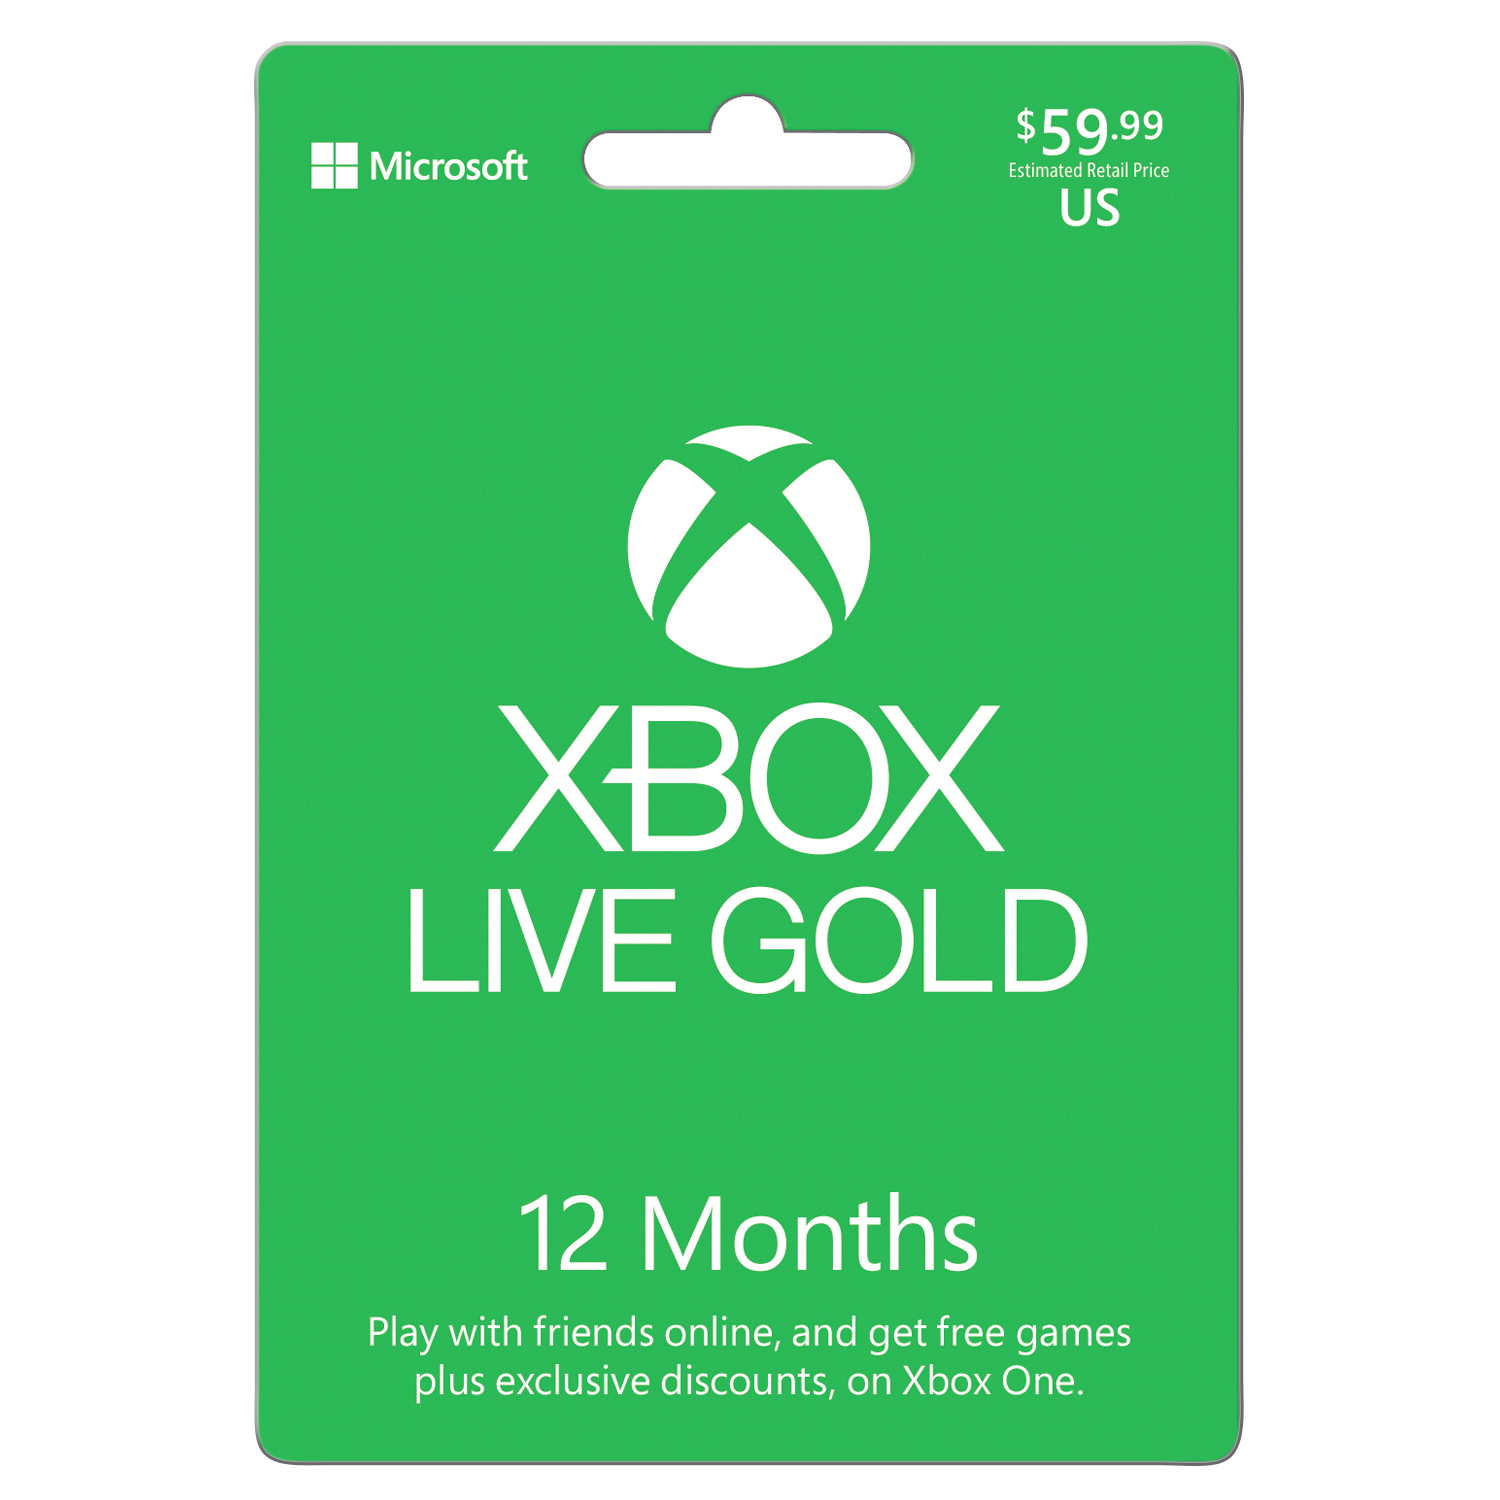 Xbox_GoldMembership_12m_PHY_M6NS_071719_